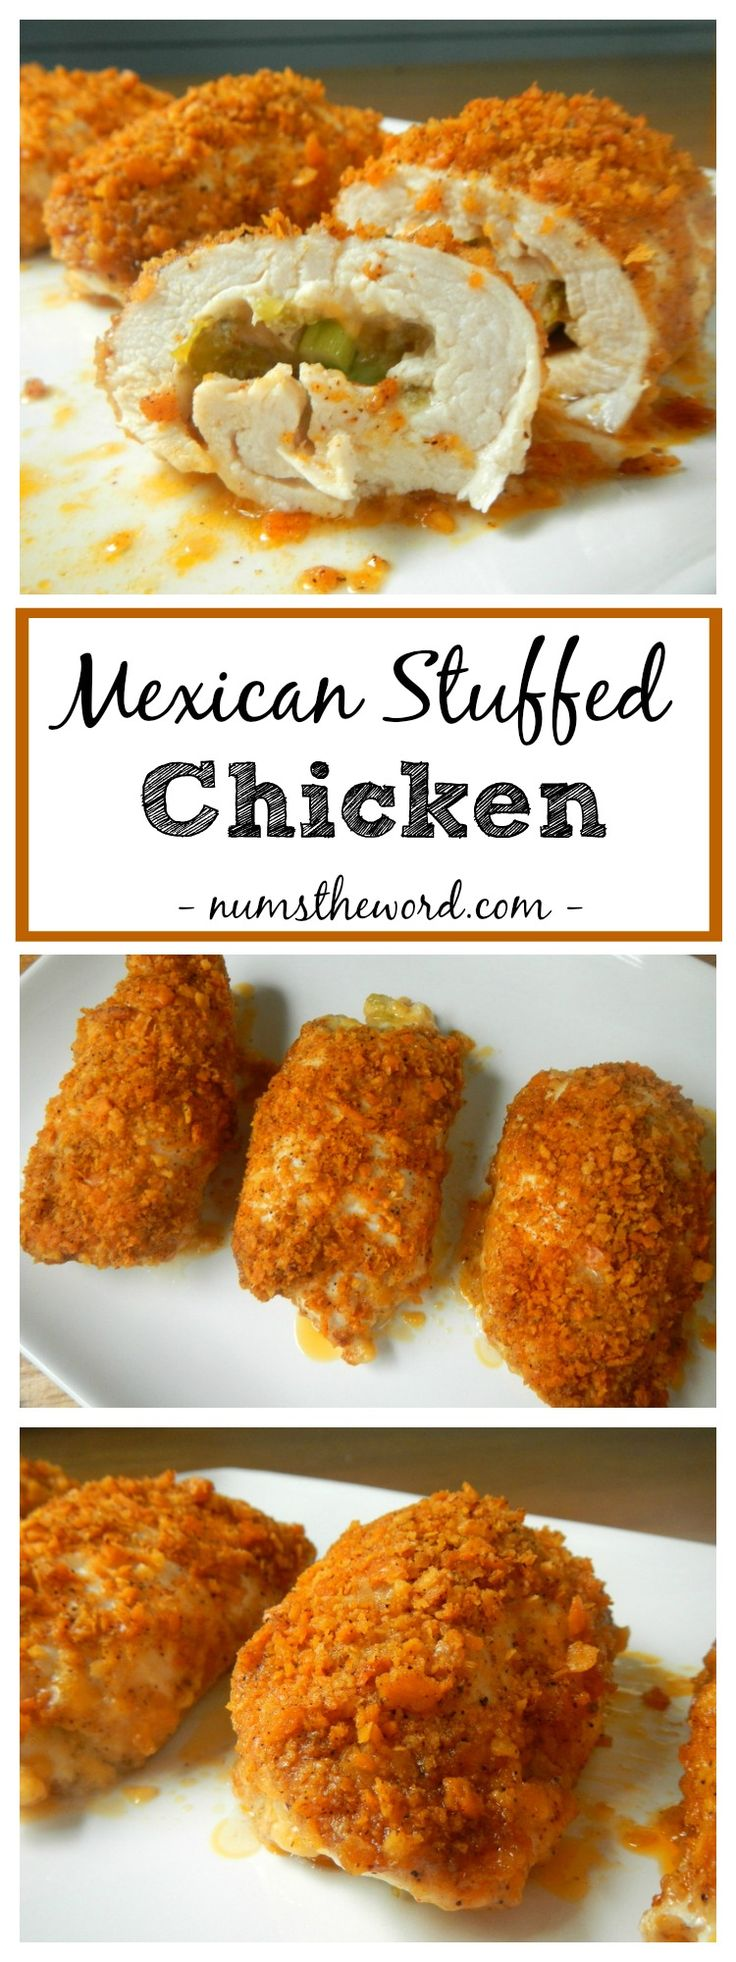 This Mexican Stuffed Chicken is kid approved and perfect for an easy family meal or when company is coming over. Ready in 1 hour from start to finish or make it ahead of time, refrigerate it and bake it when ready! super easy to create and oh so tasty!